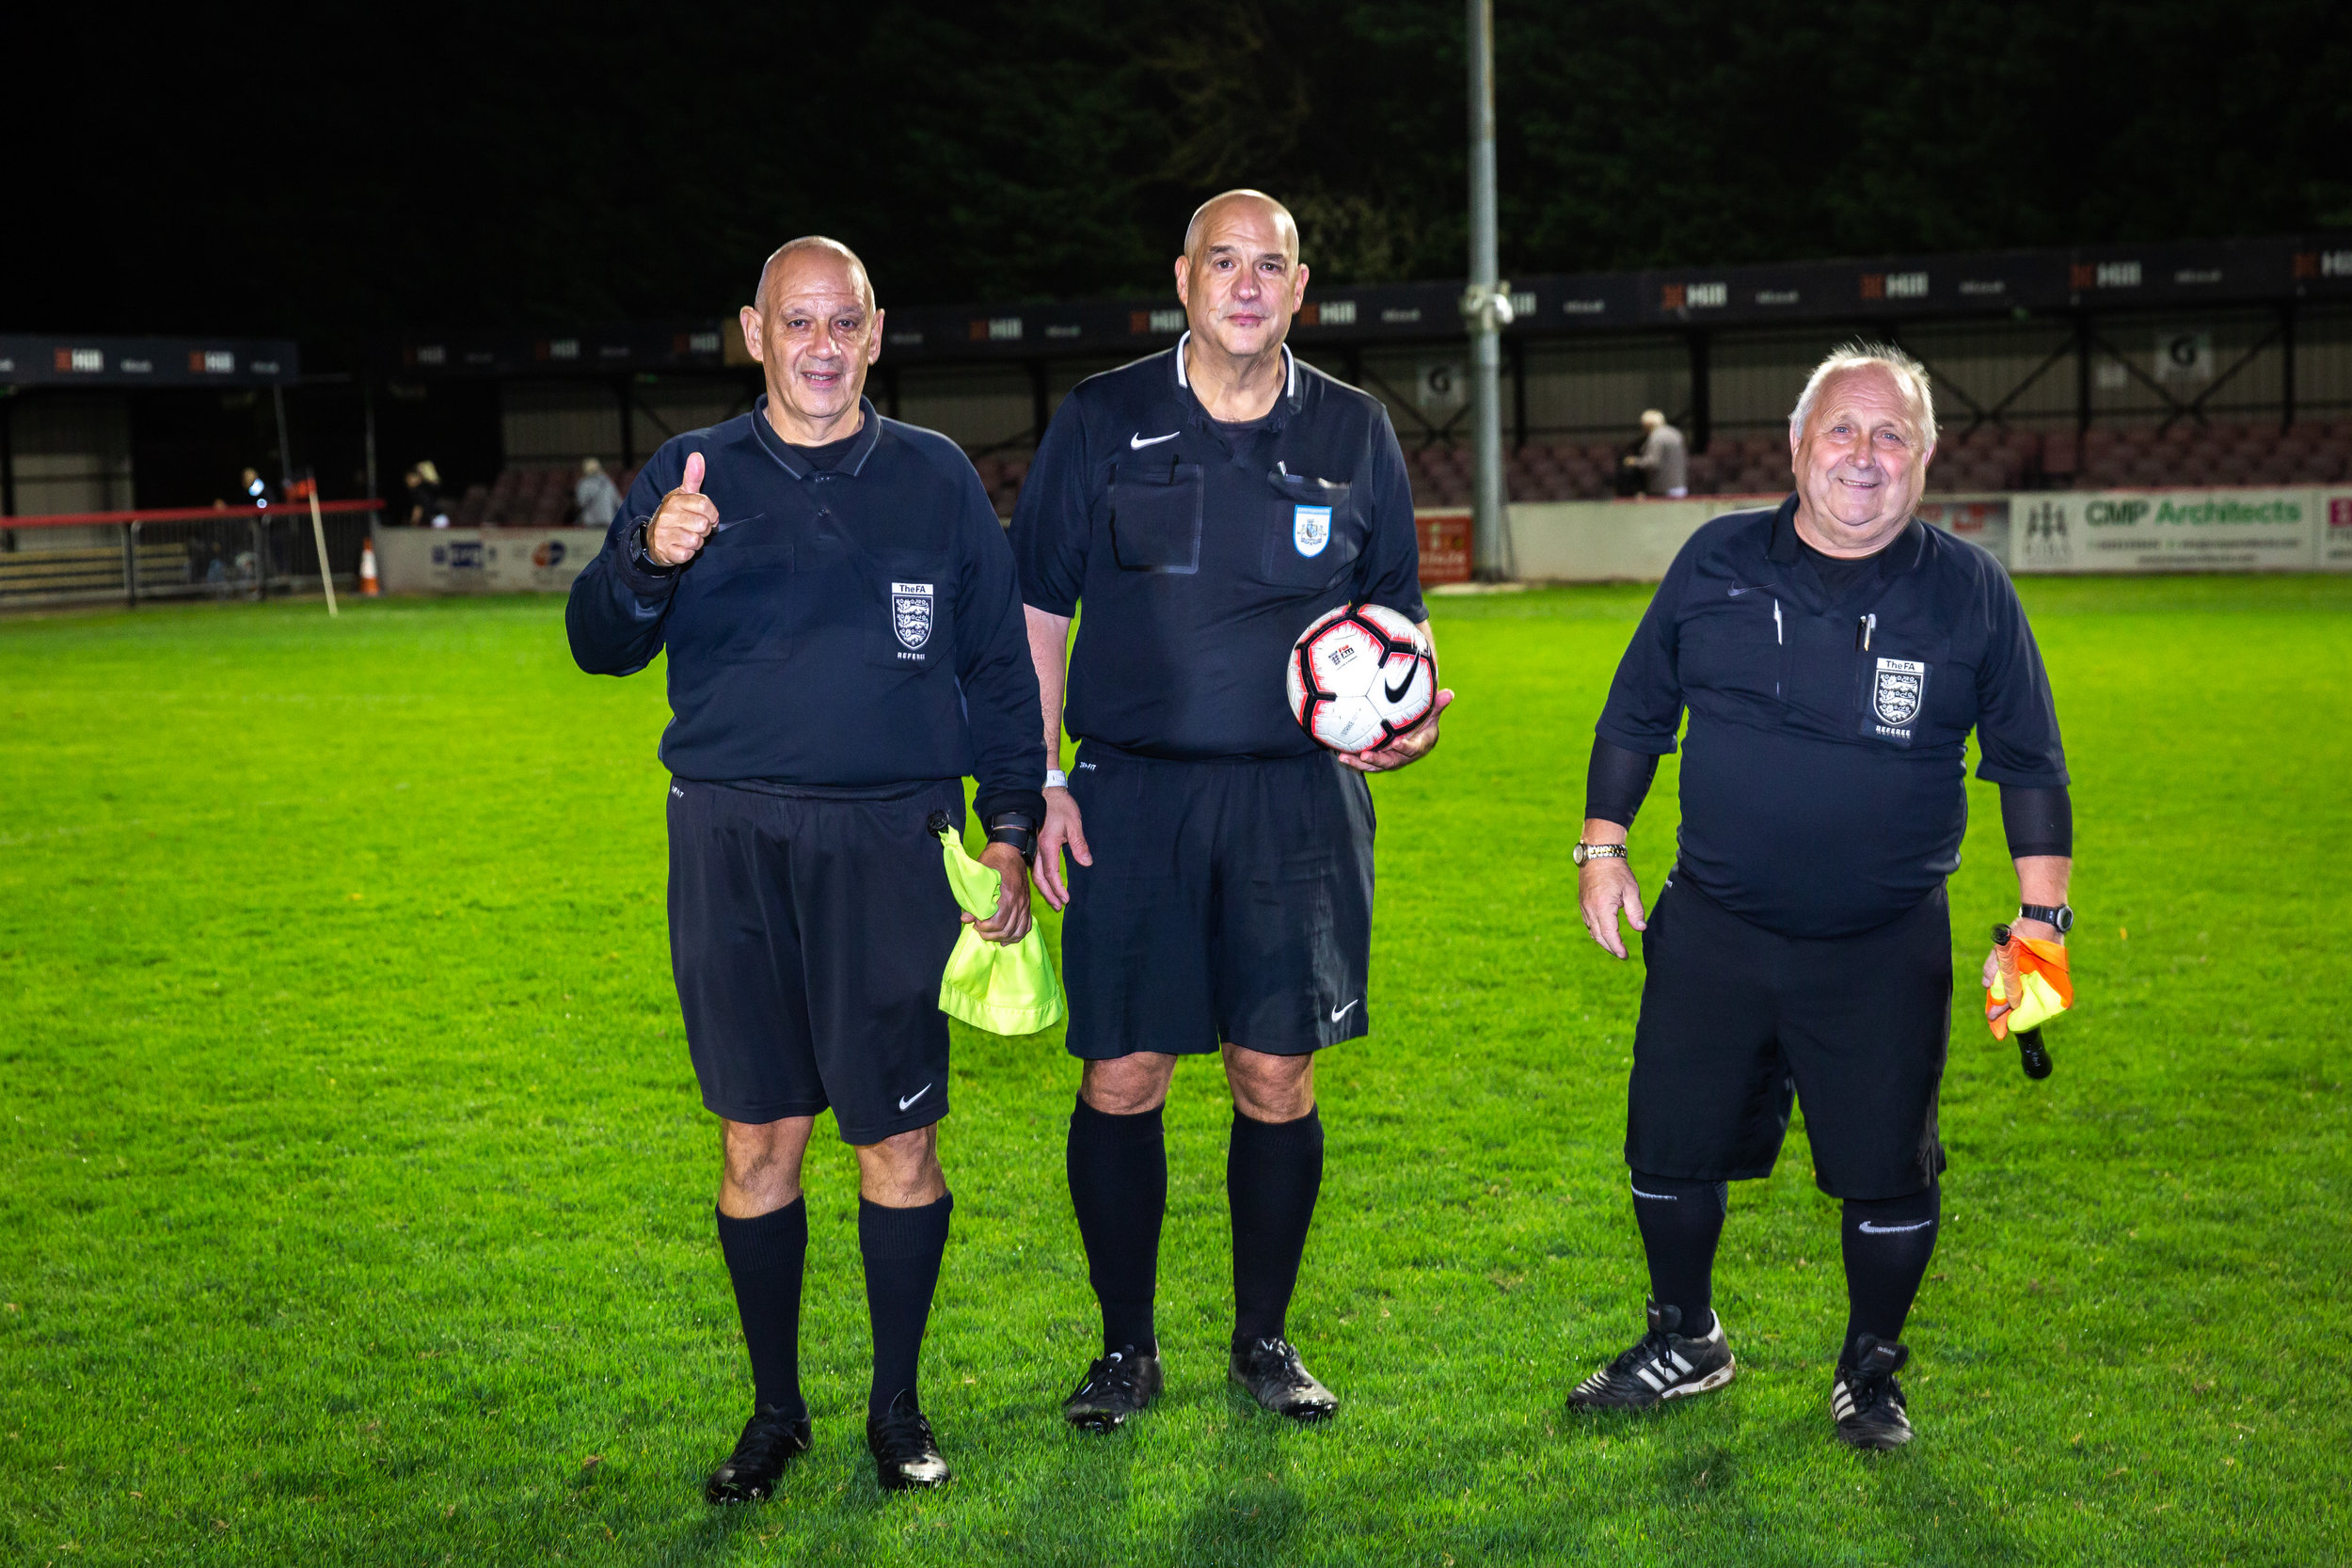 KICK CANCER CUP REFEREES